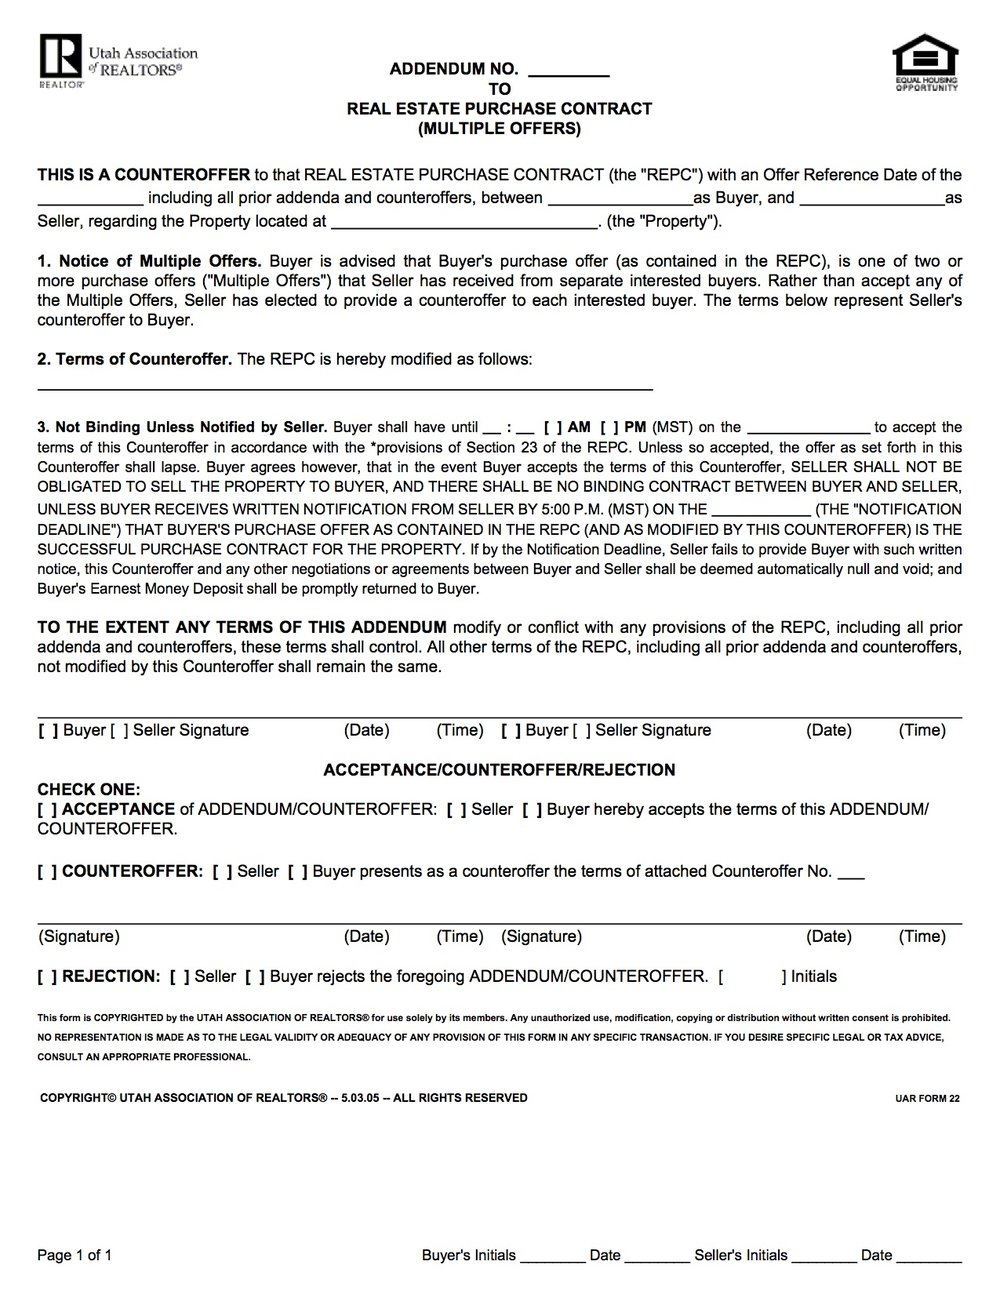 Multiple Offer Addendum - Form provided by the Utah Association of Realtors